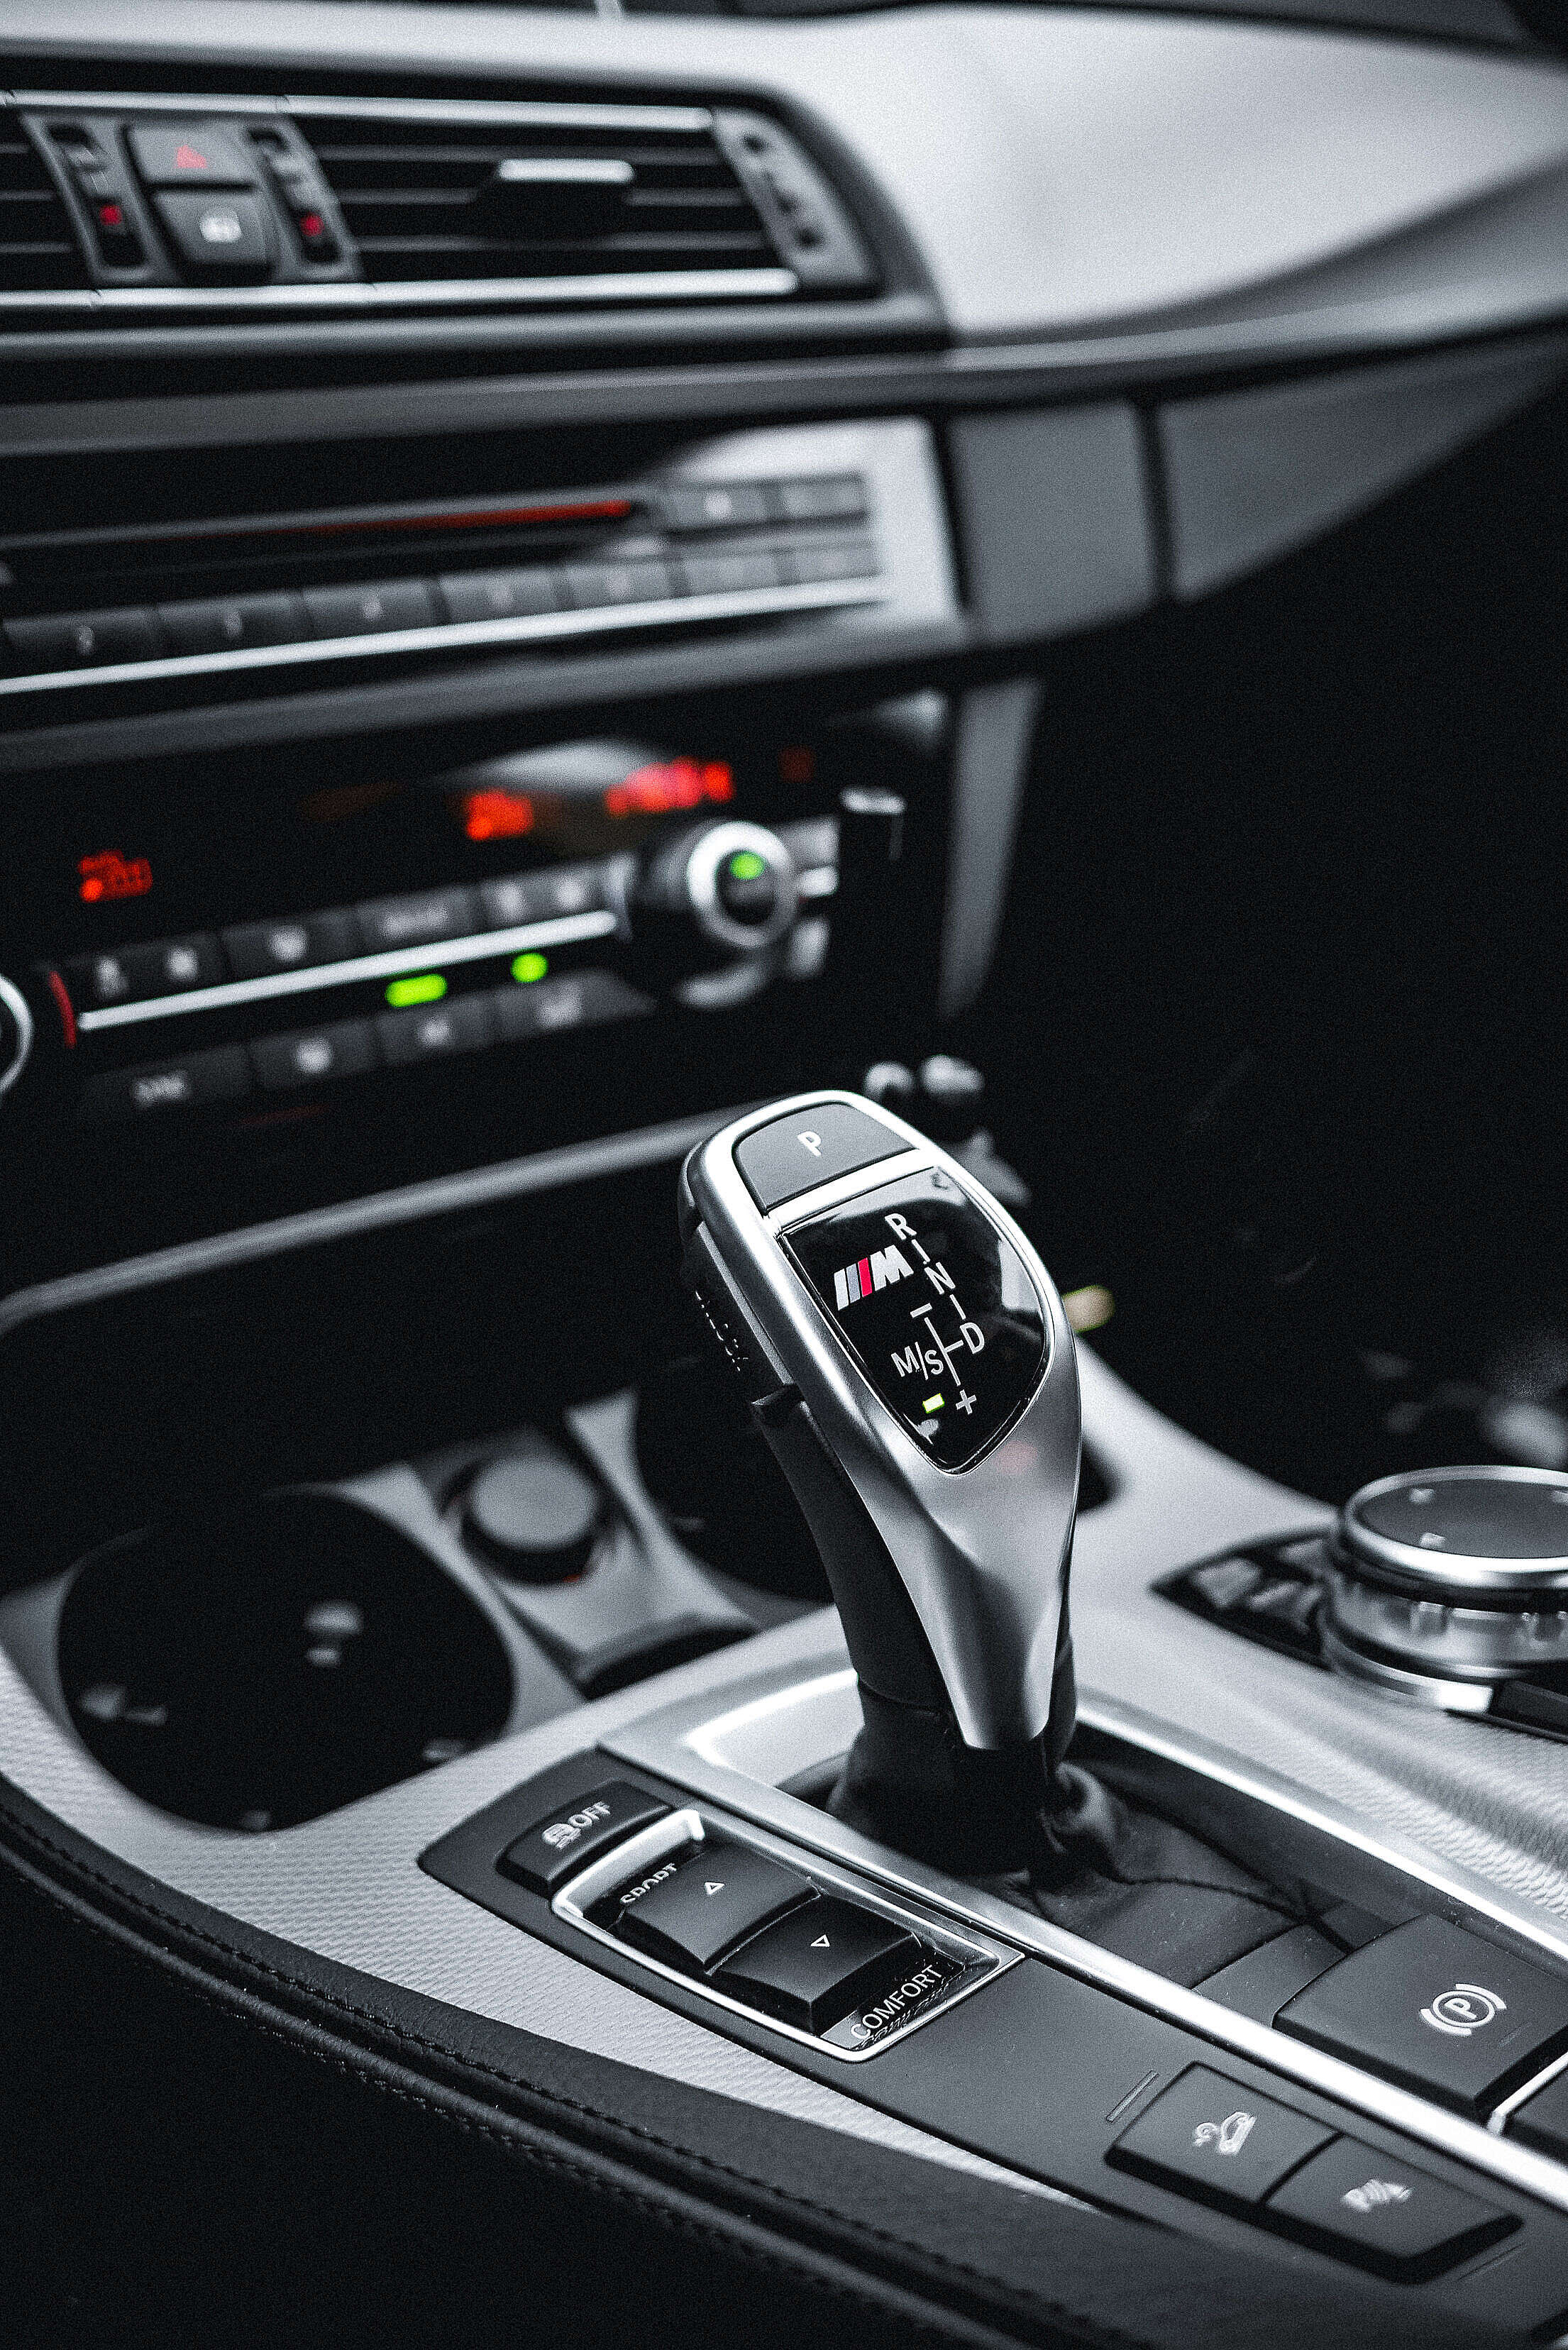 BMW M Diesel Automatic Gear Selector Free Stock Photo